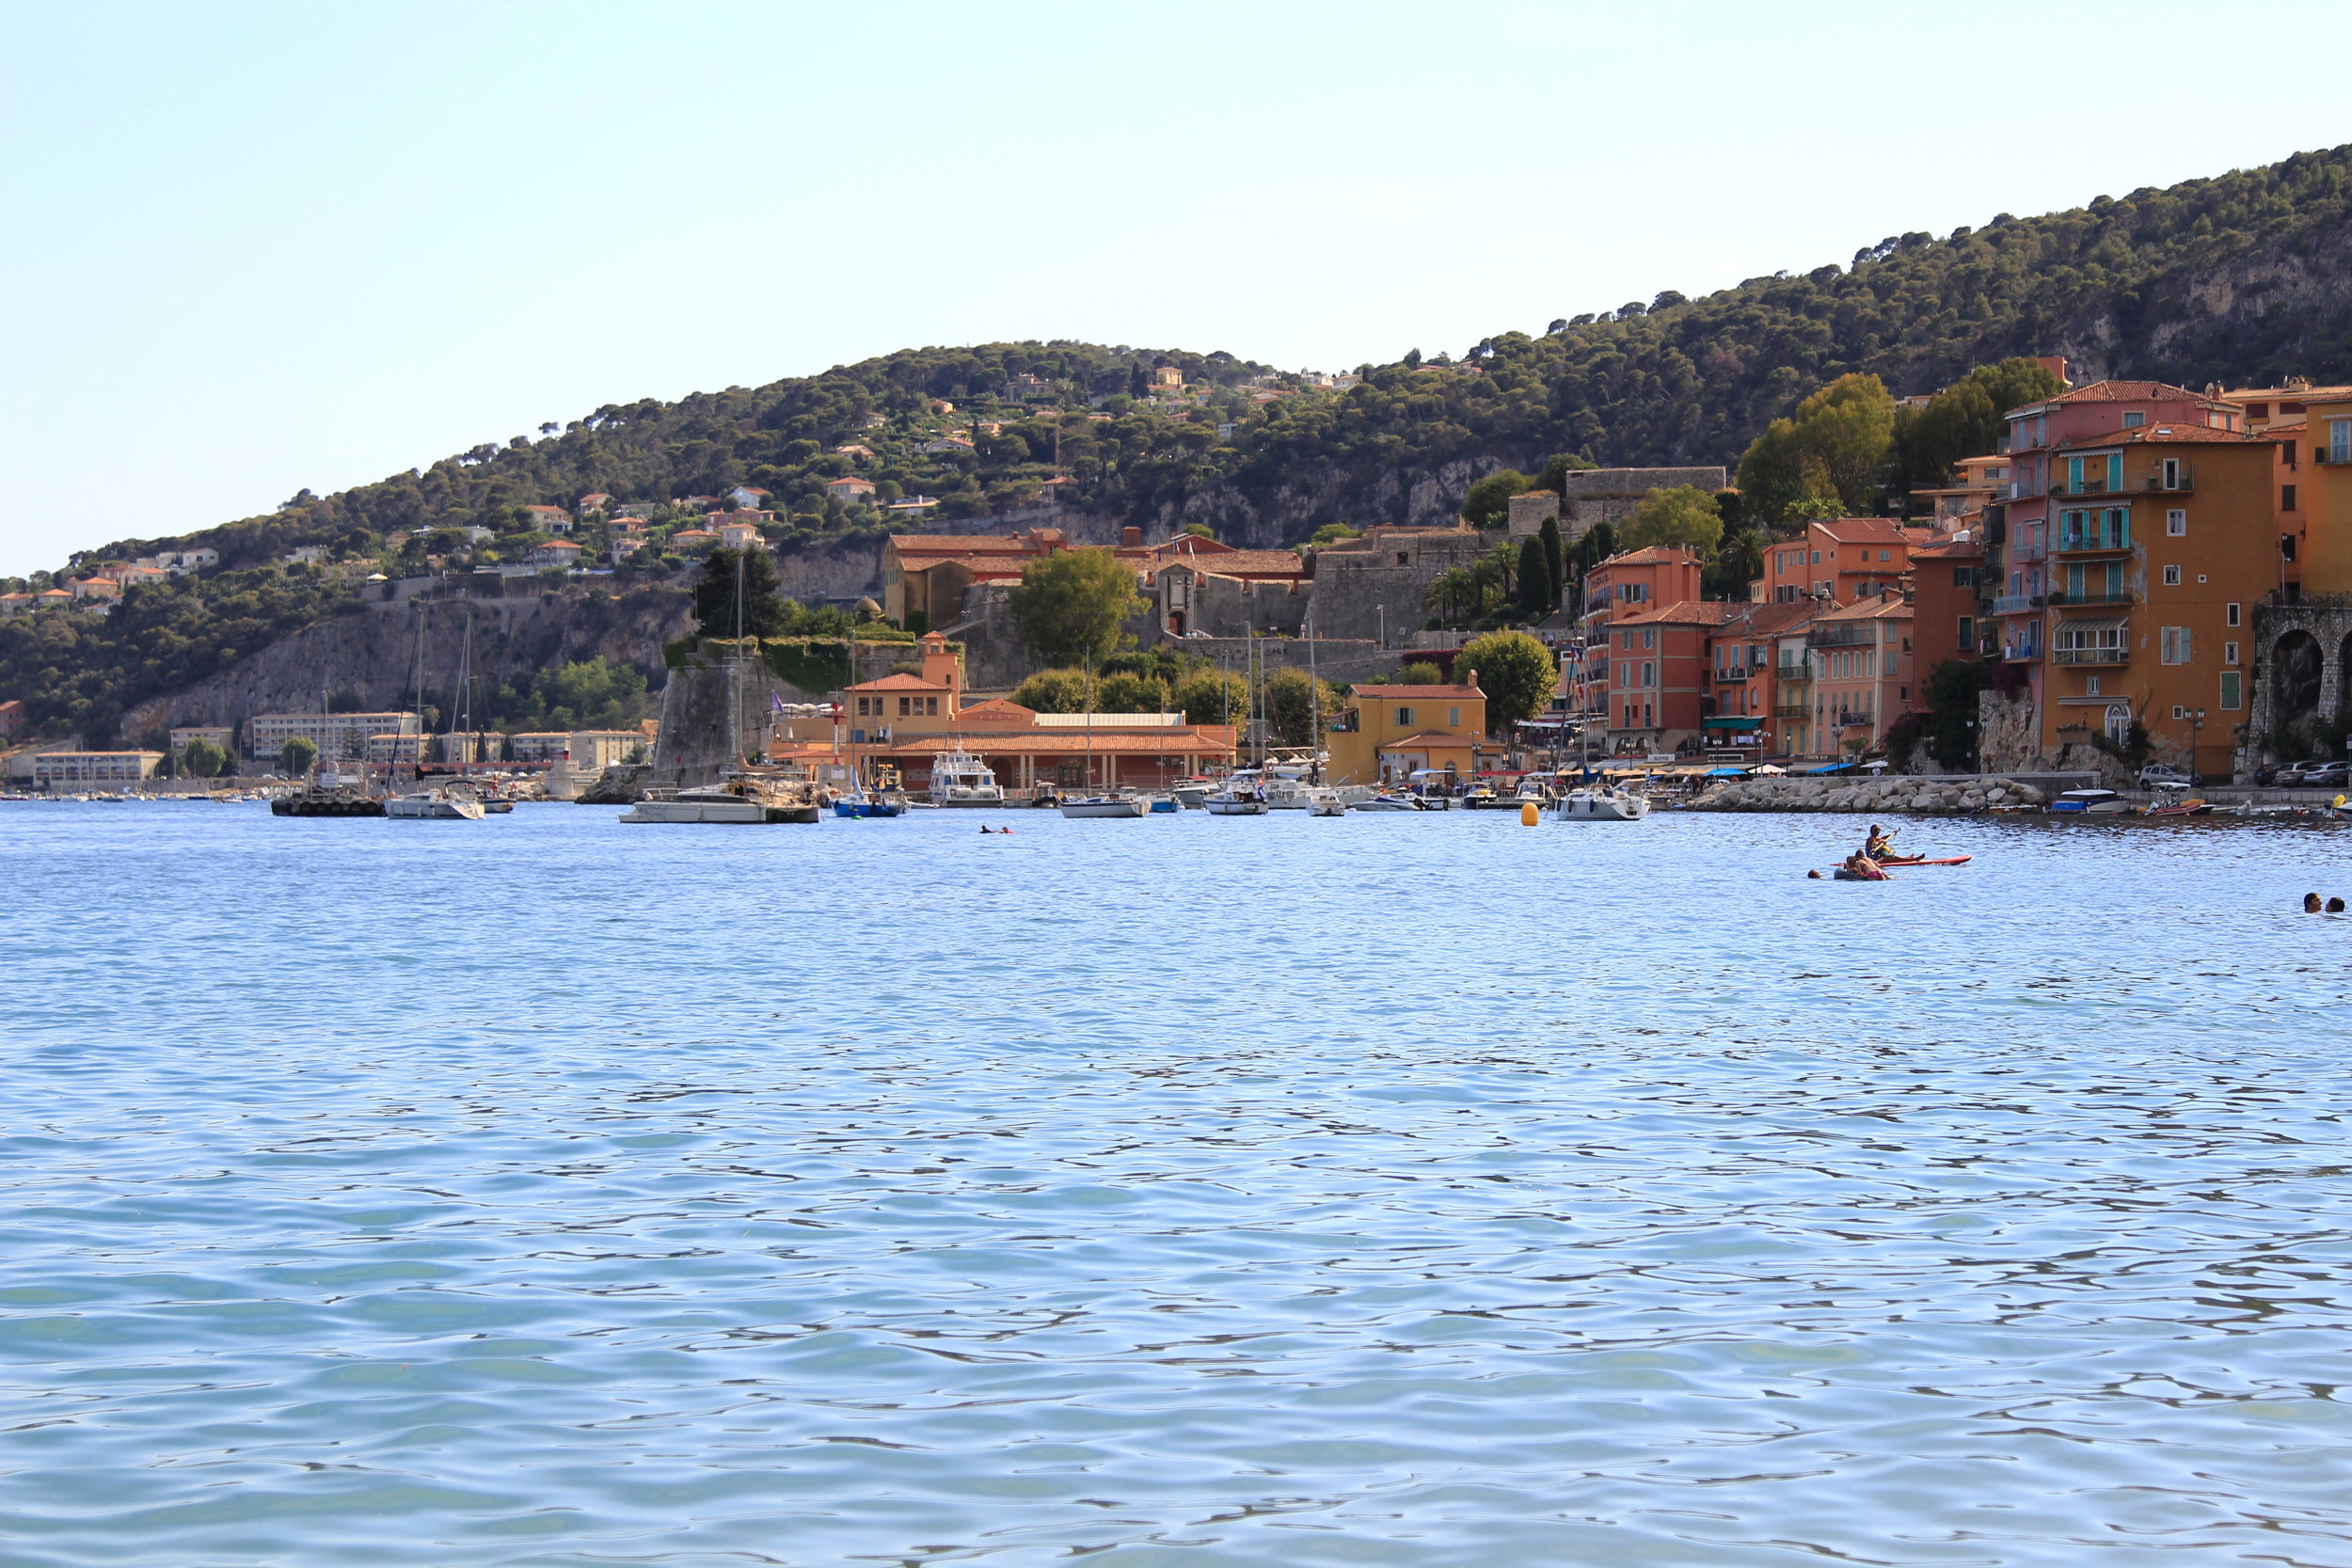 Villefranche-sur-mere, beach town in the South of France